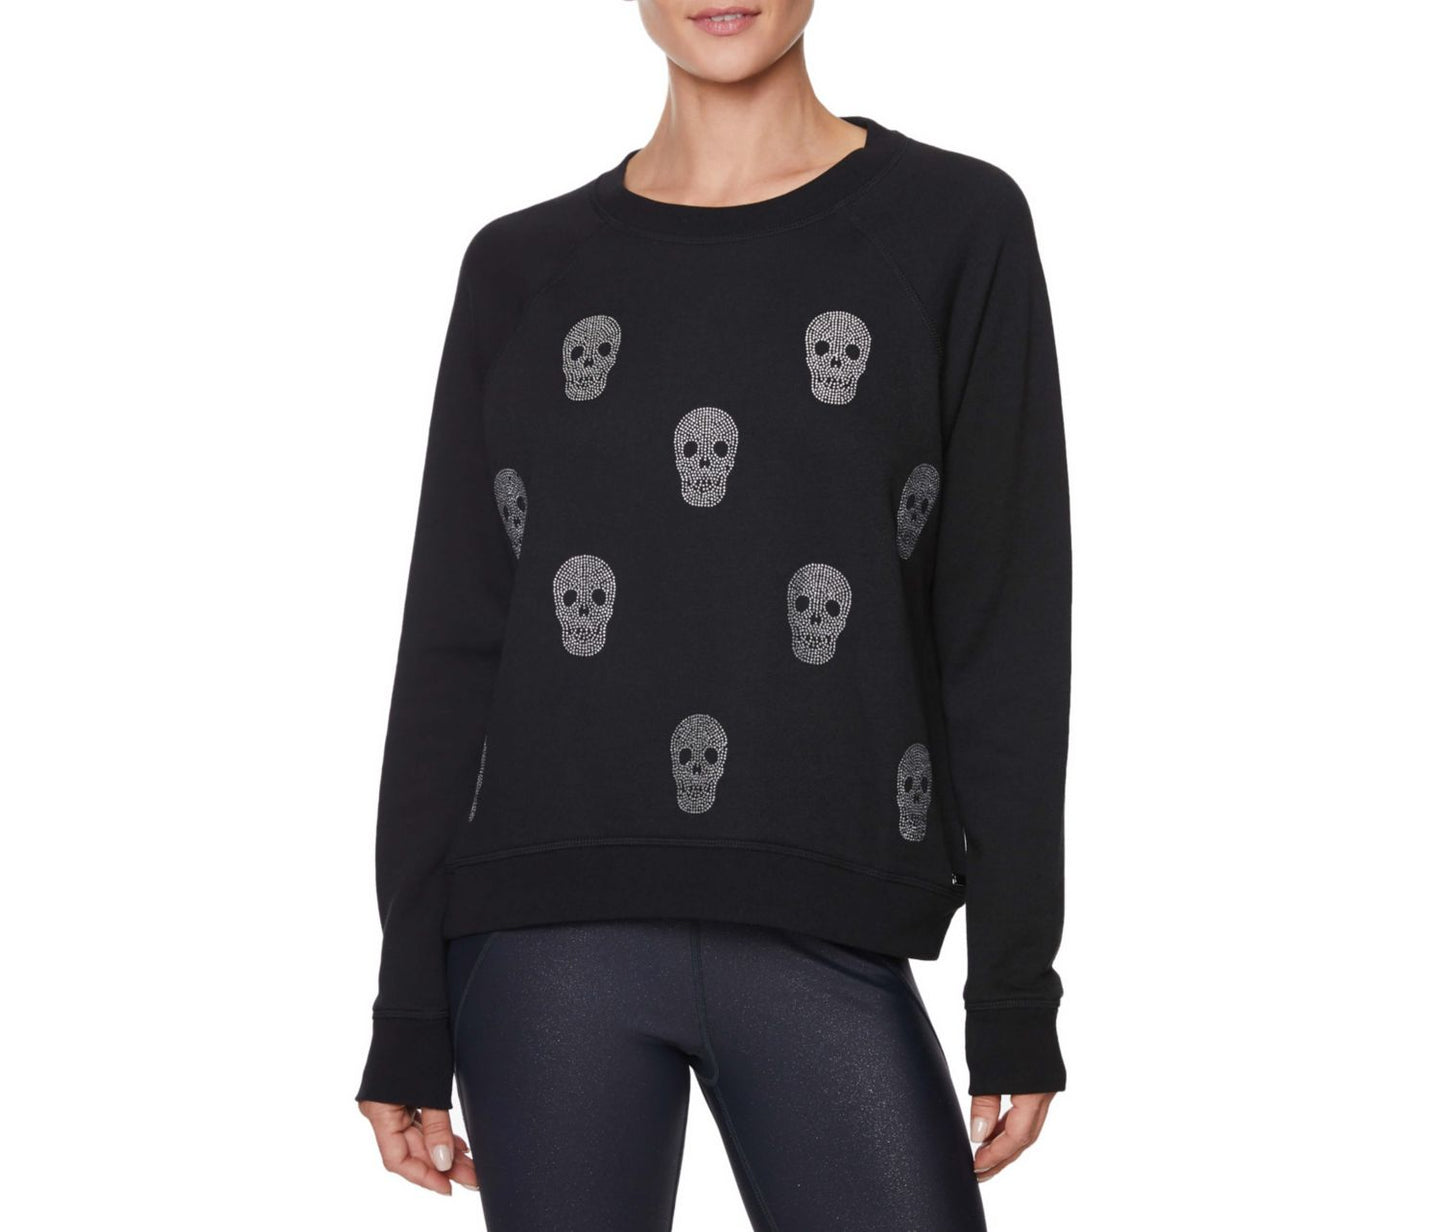 RHINESTONE SKULL PULLOVER BLACK - APPAREL - Betsey Johnson